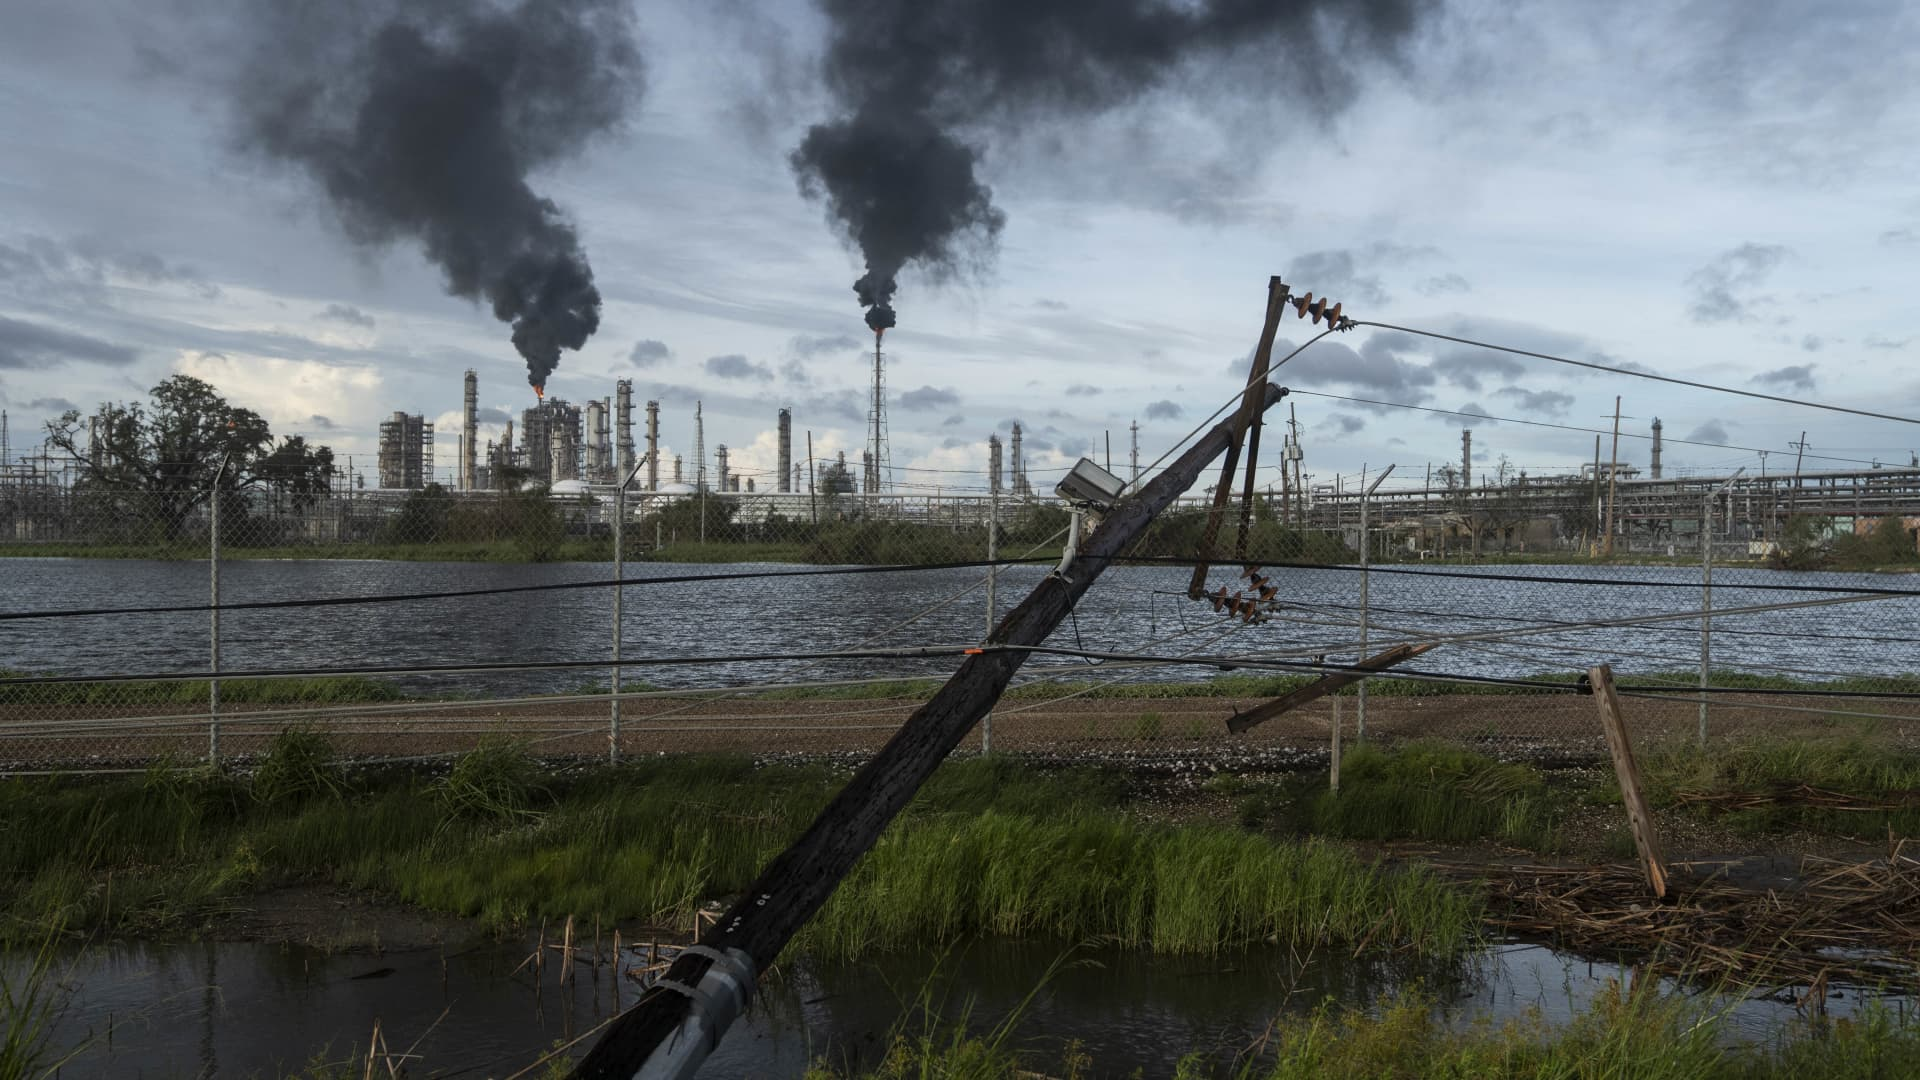 Broken power lines, destroyed by Hurricane Ida, are seen along a highway near a petroleum refinery on August 30, 2021 outside LaPlace, Louisiana.